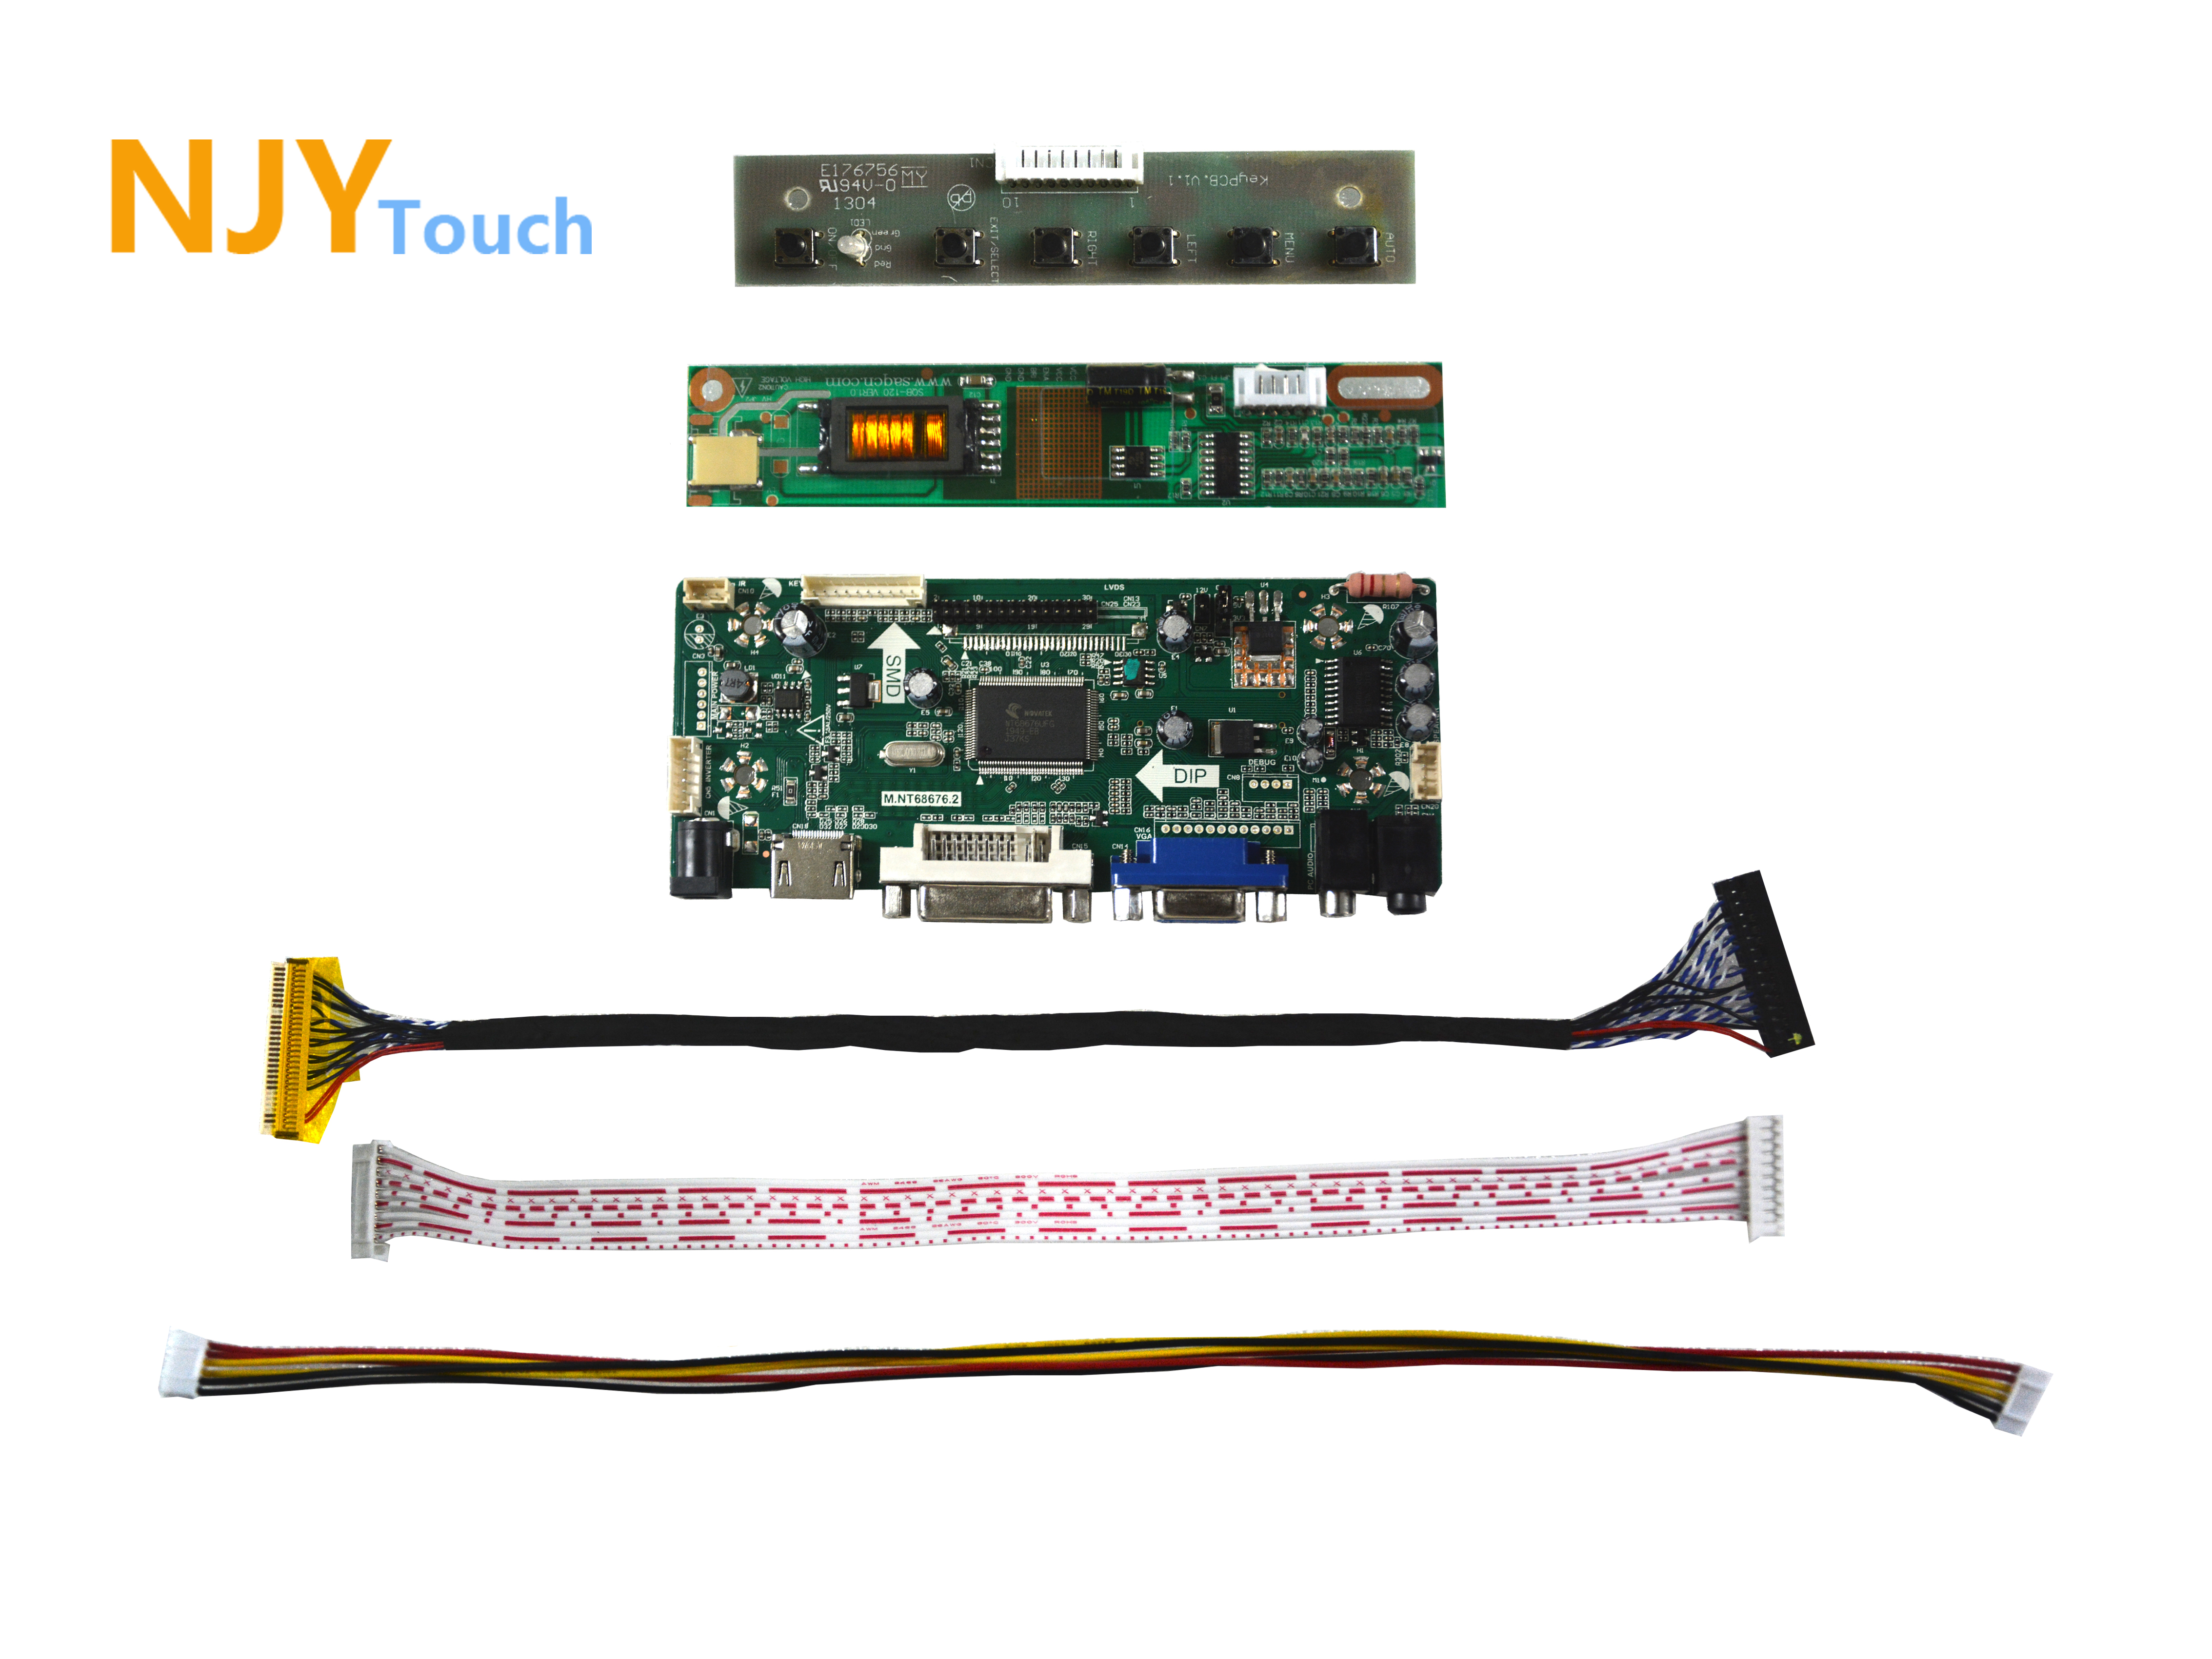 NJYTouch M.NT68676.2A HDMI VGA DVI Controller Board For 15.4inch B154PW01 B154PW02 V2 1440x900 LCD Screen